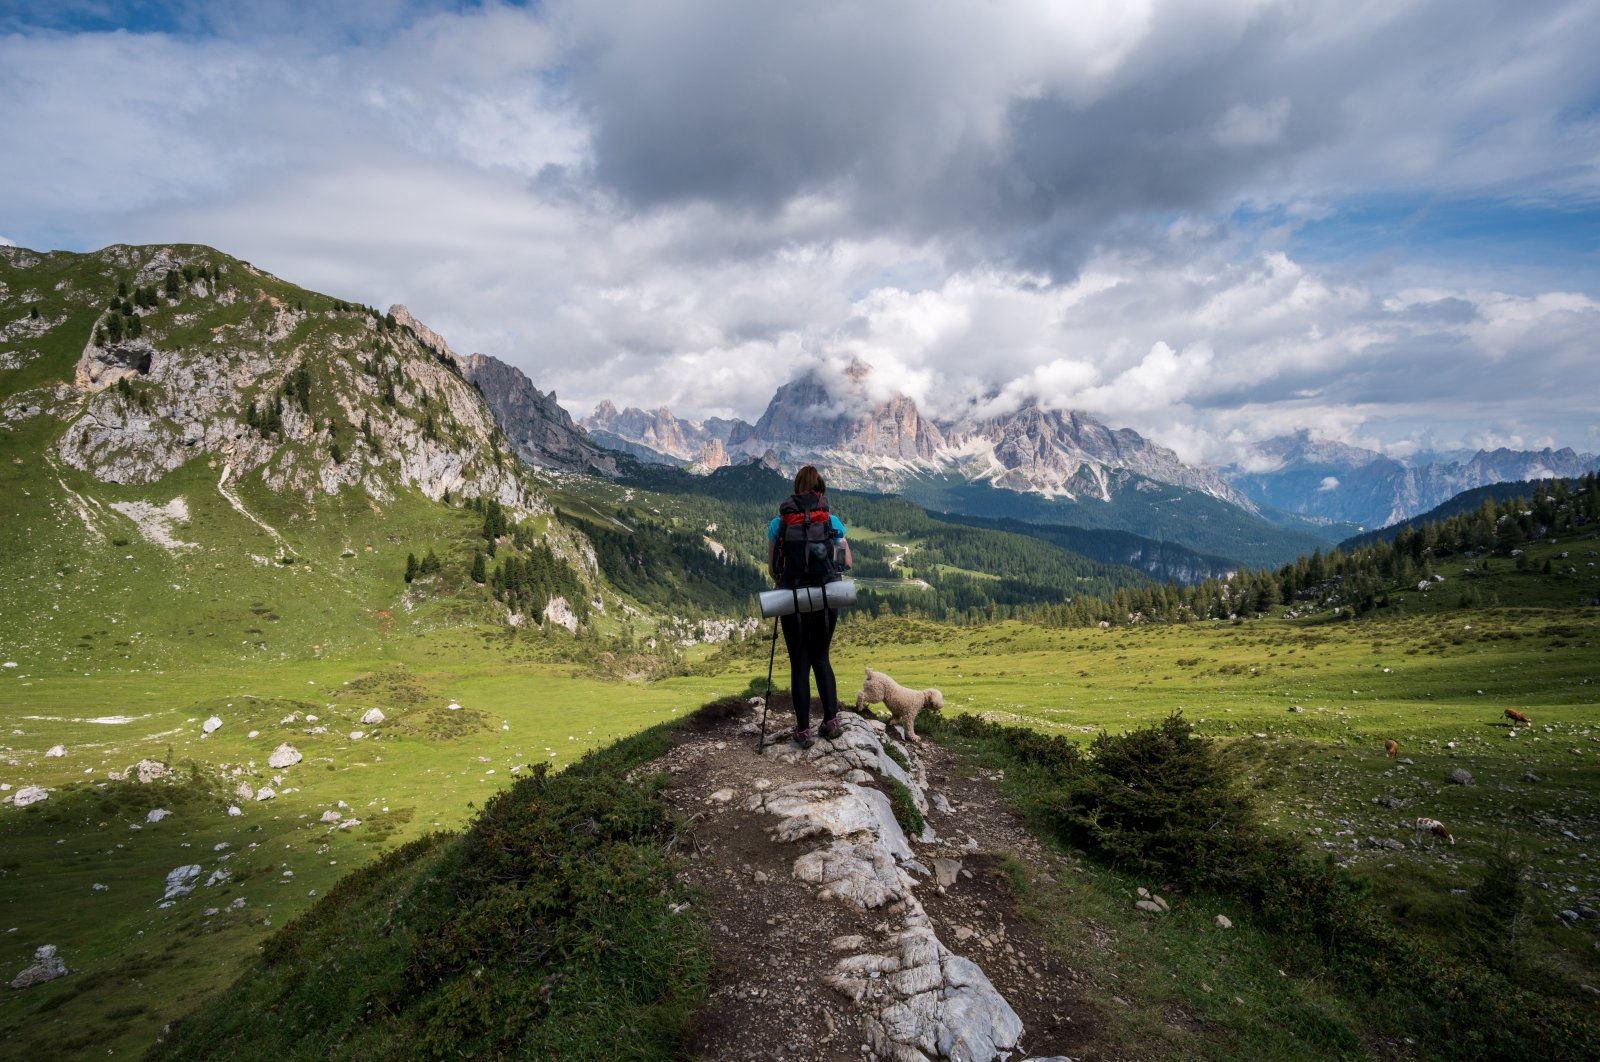 A young hiker with a backpack walks on a mountain trail with a dog. (Shutterstock Photo)